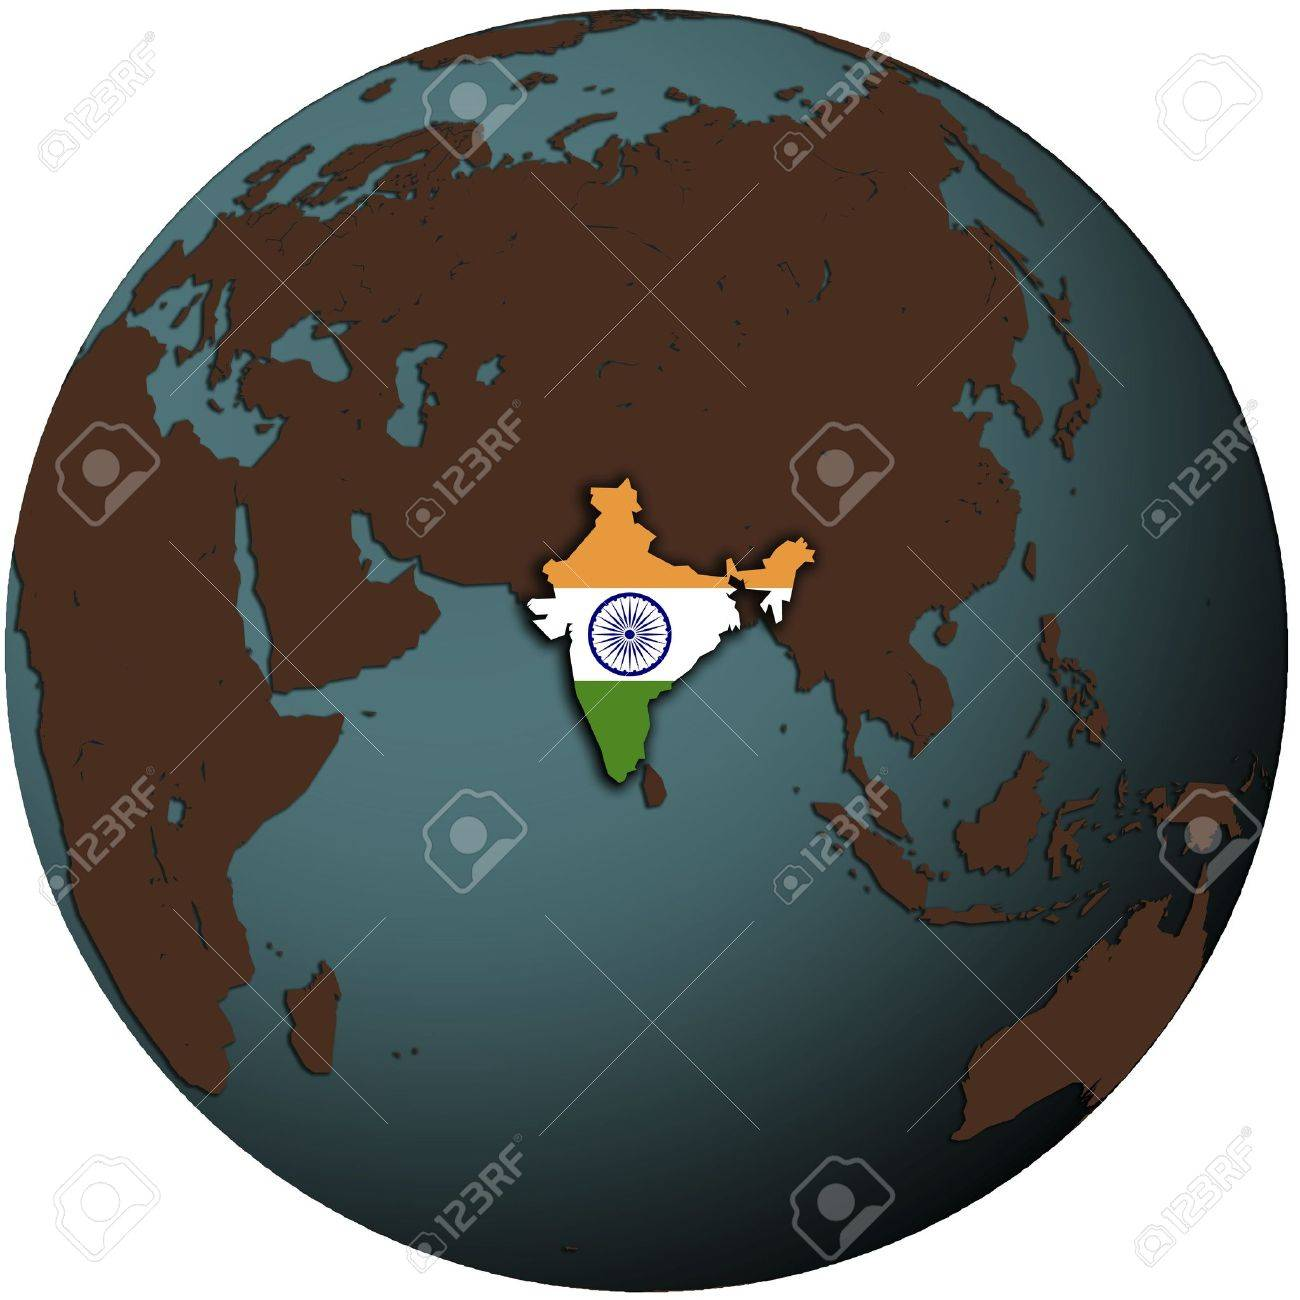 Earth Map India India Flag On Map Of Earth Globe Stock Photo, Picture And Royalty